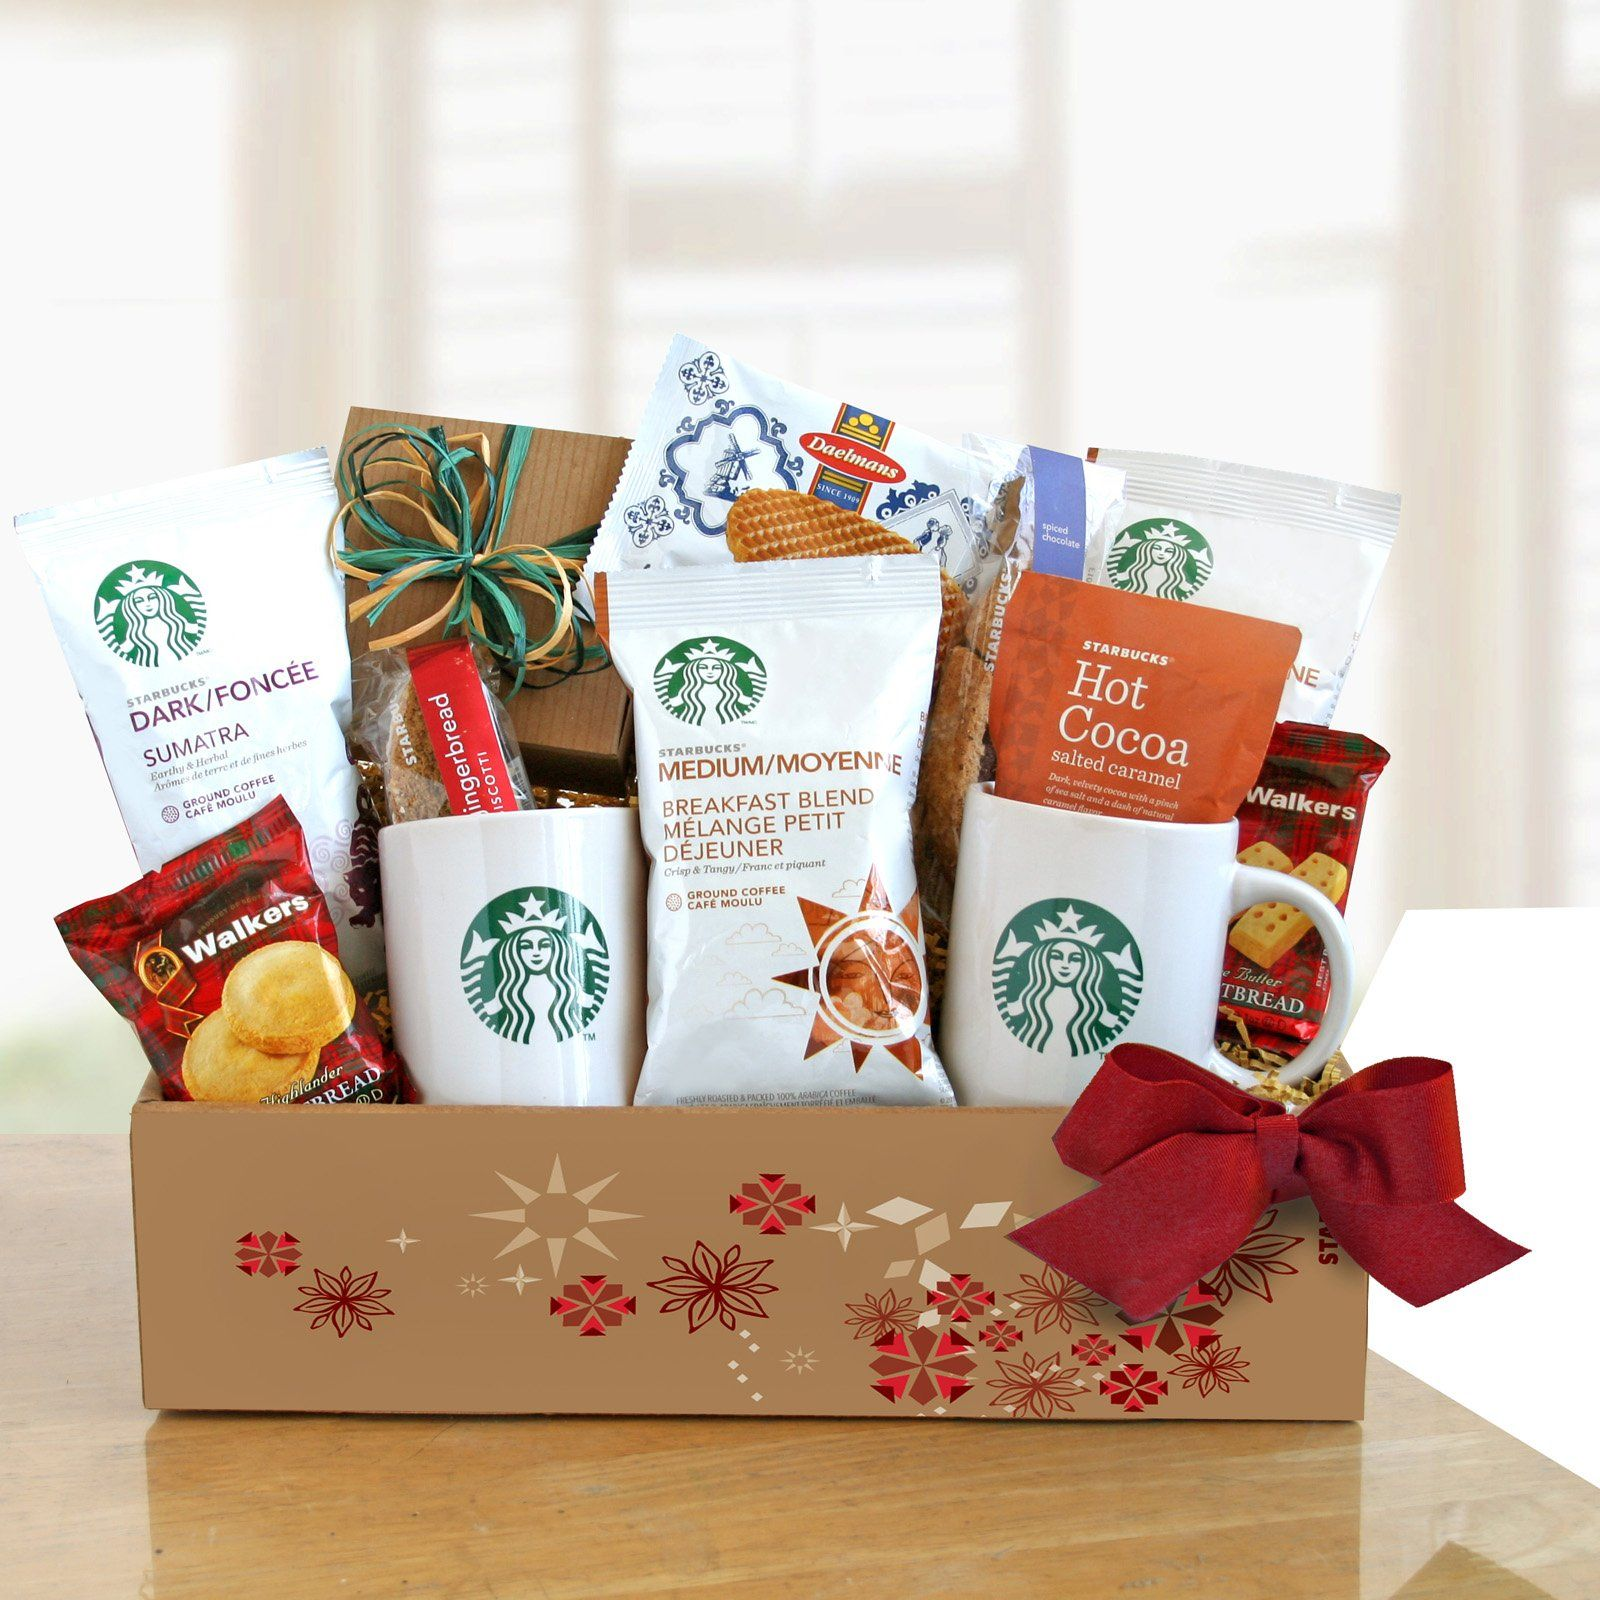 He will love this Starbucks Home for the Holidays Gift